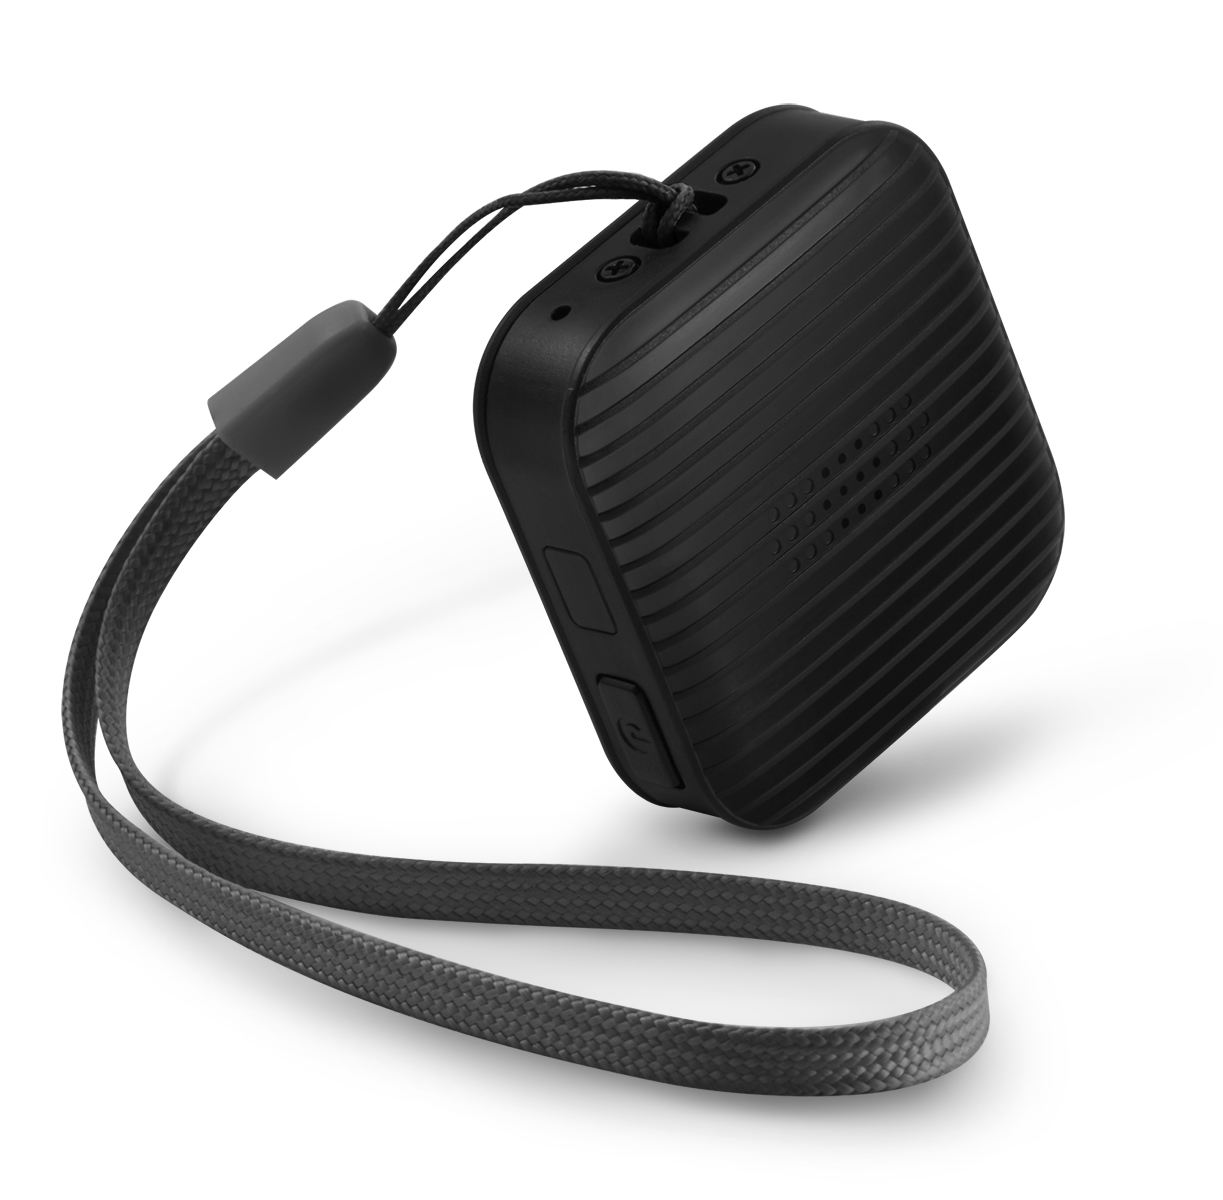 OEM Micro USB ชาร์จเด็ก Elder Multi-Function GPS Tracker